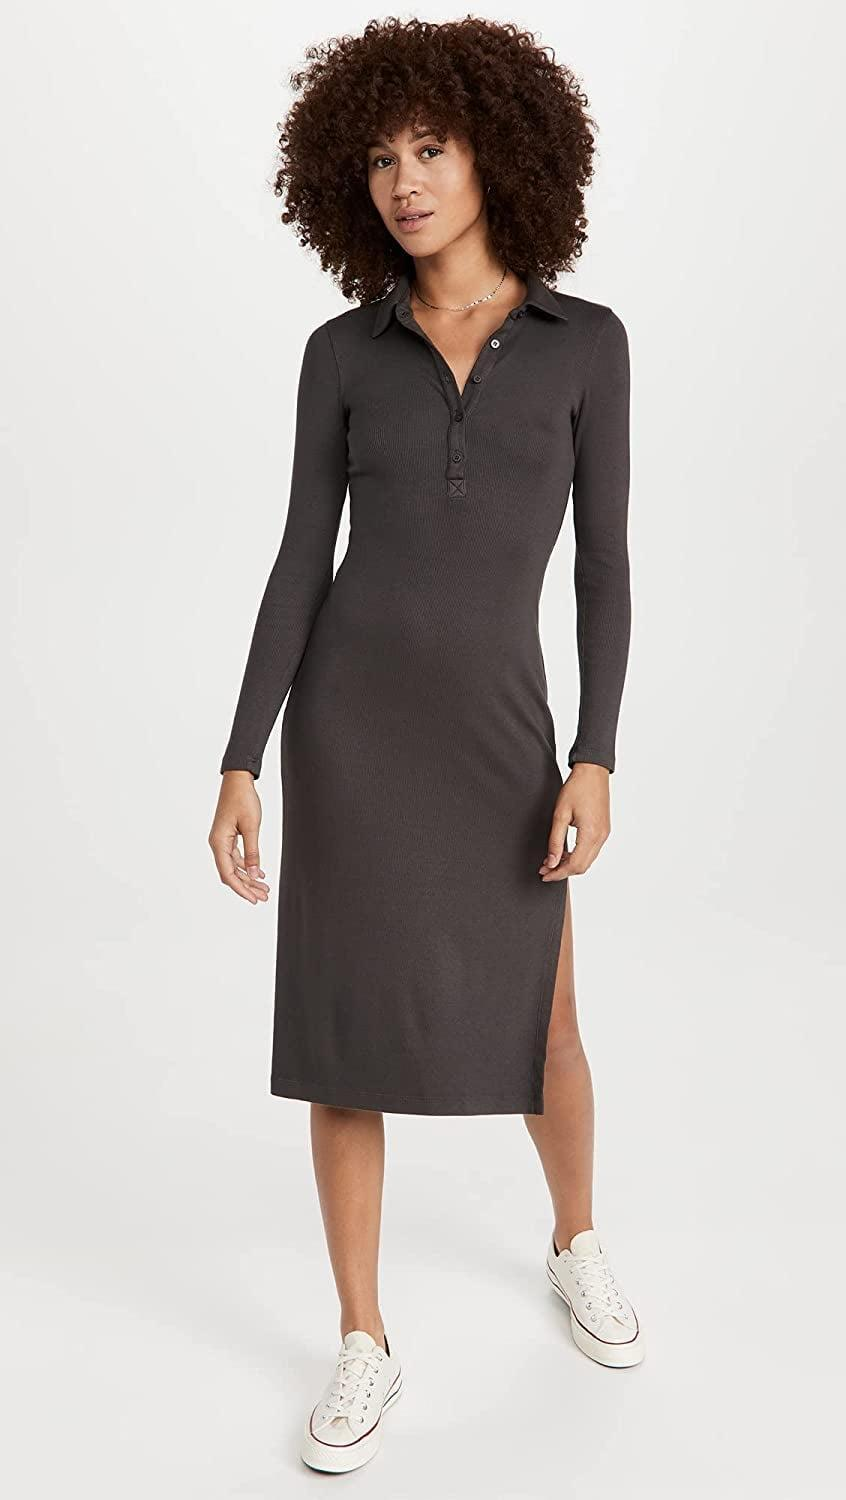 <p>This <span>Stateside Polo Midi Dress</span> ($144) has a sporty and easygoing vibe to it that dials up the appeal. We're drawn to the slit, which brings a sexy touch to it.</p>